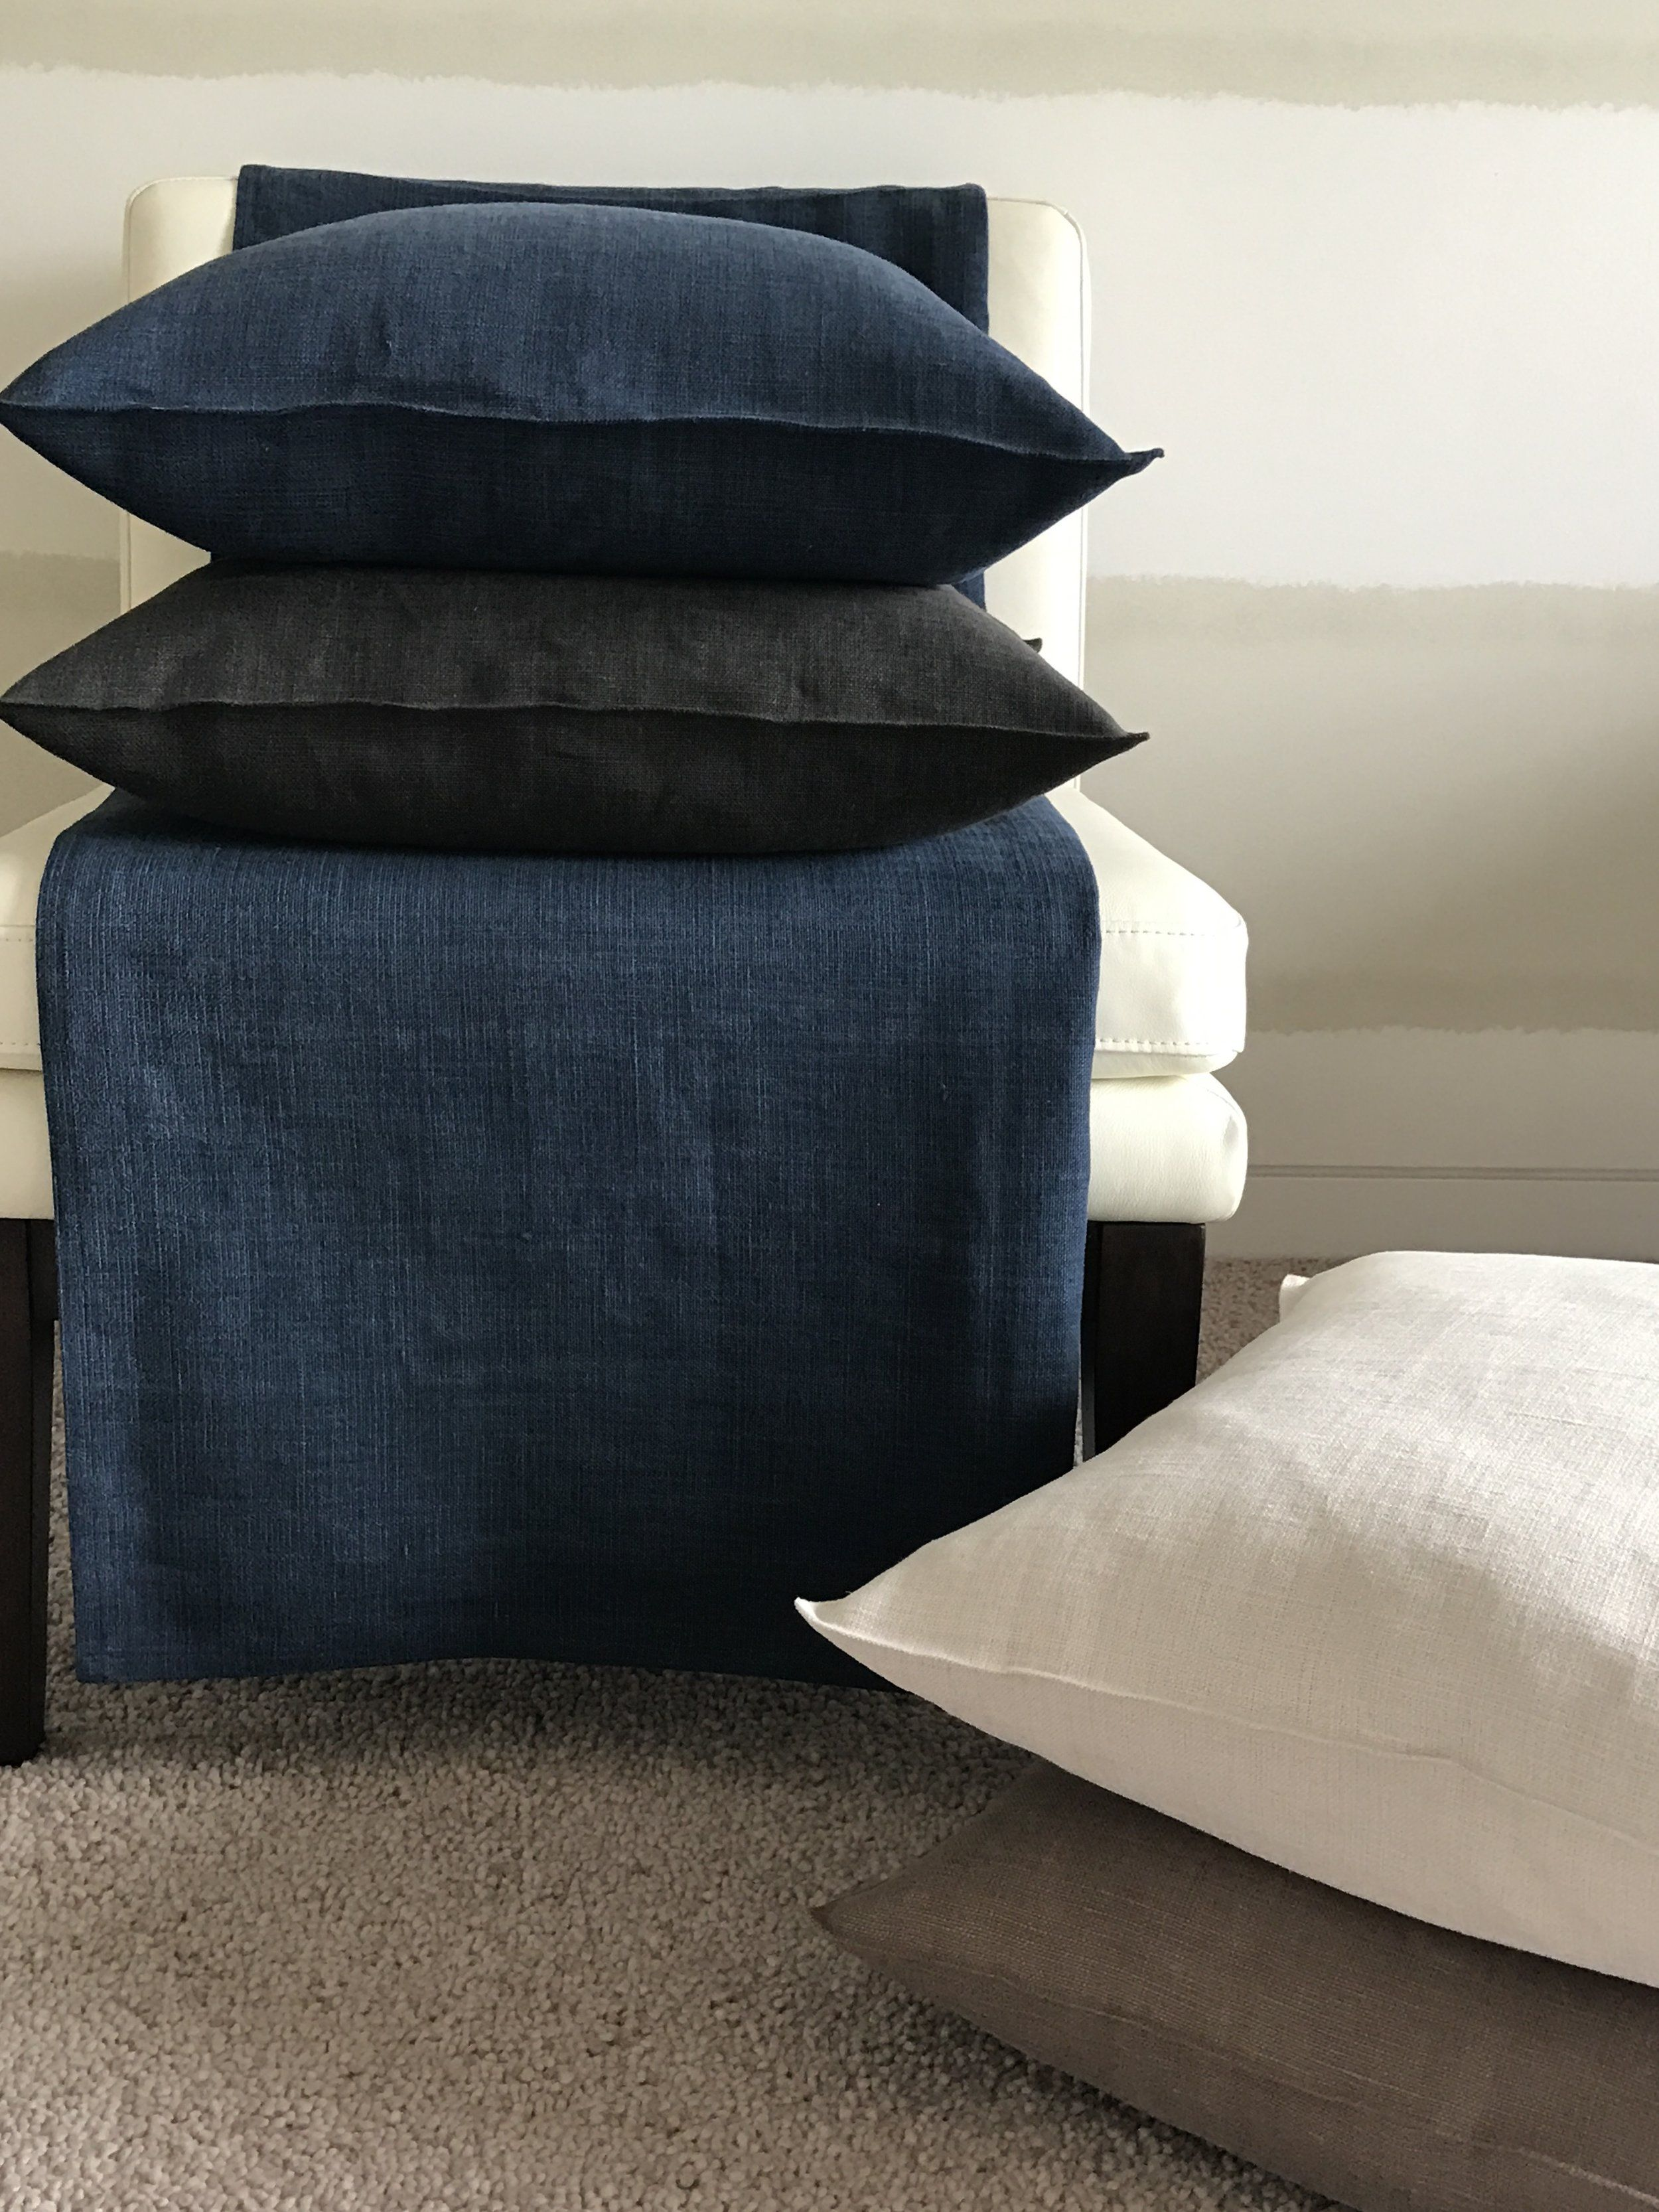 Libeco Linen HOME COLLECTION Pillows and Blanket  Canvas Cloth and Bowl